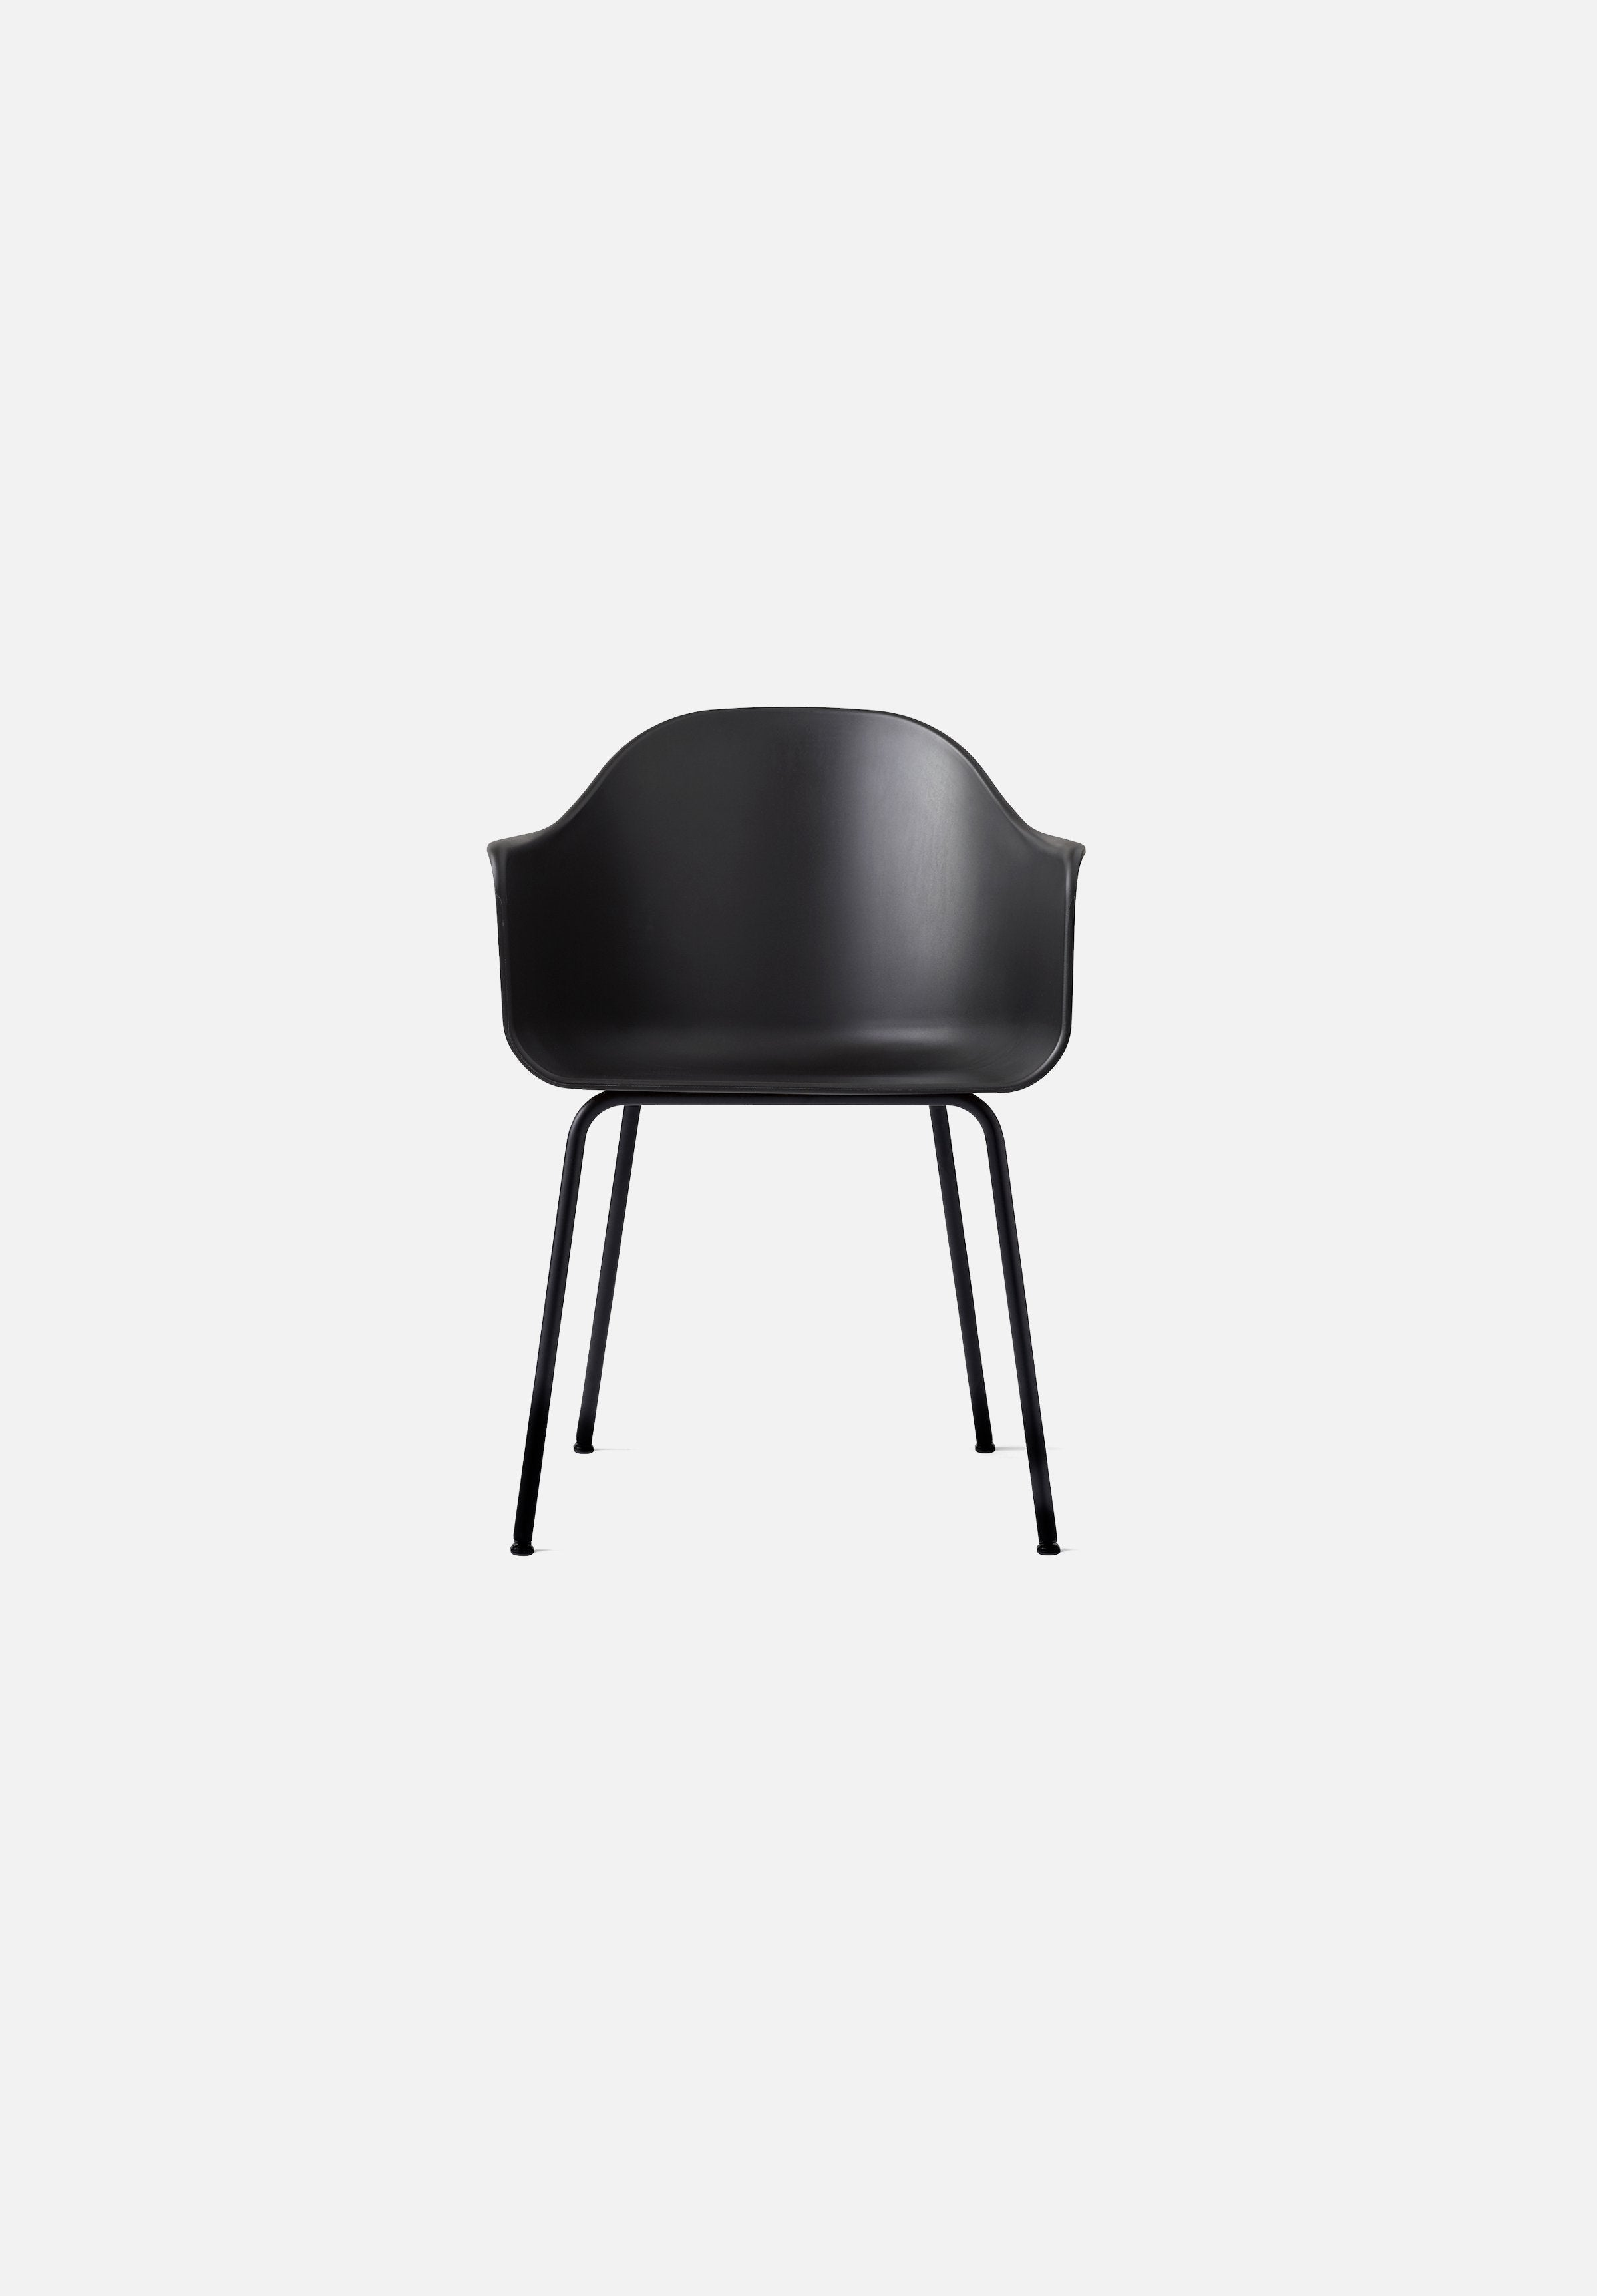 Harbour Chair - Steel Base-Norm Architects-Menu-black-Black Steel-danish-interior-furniture-denmark-Average-design-toronto-canada